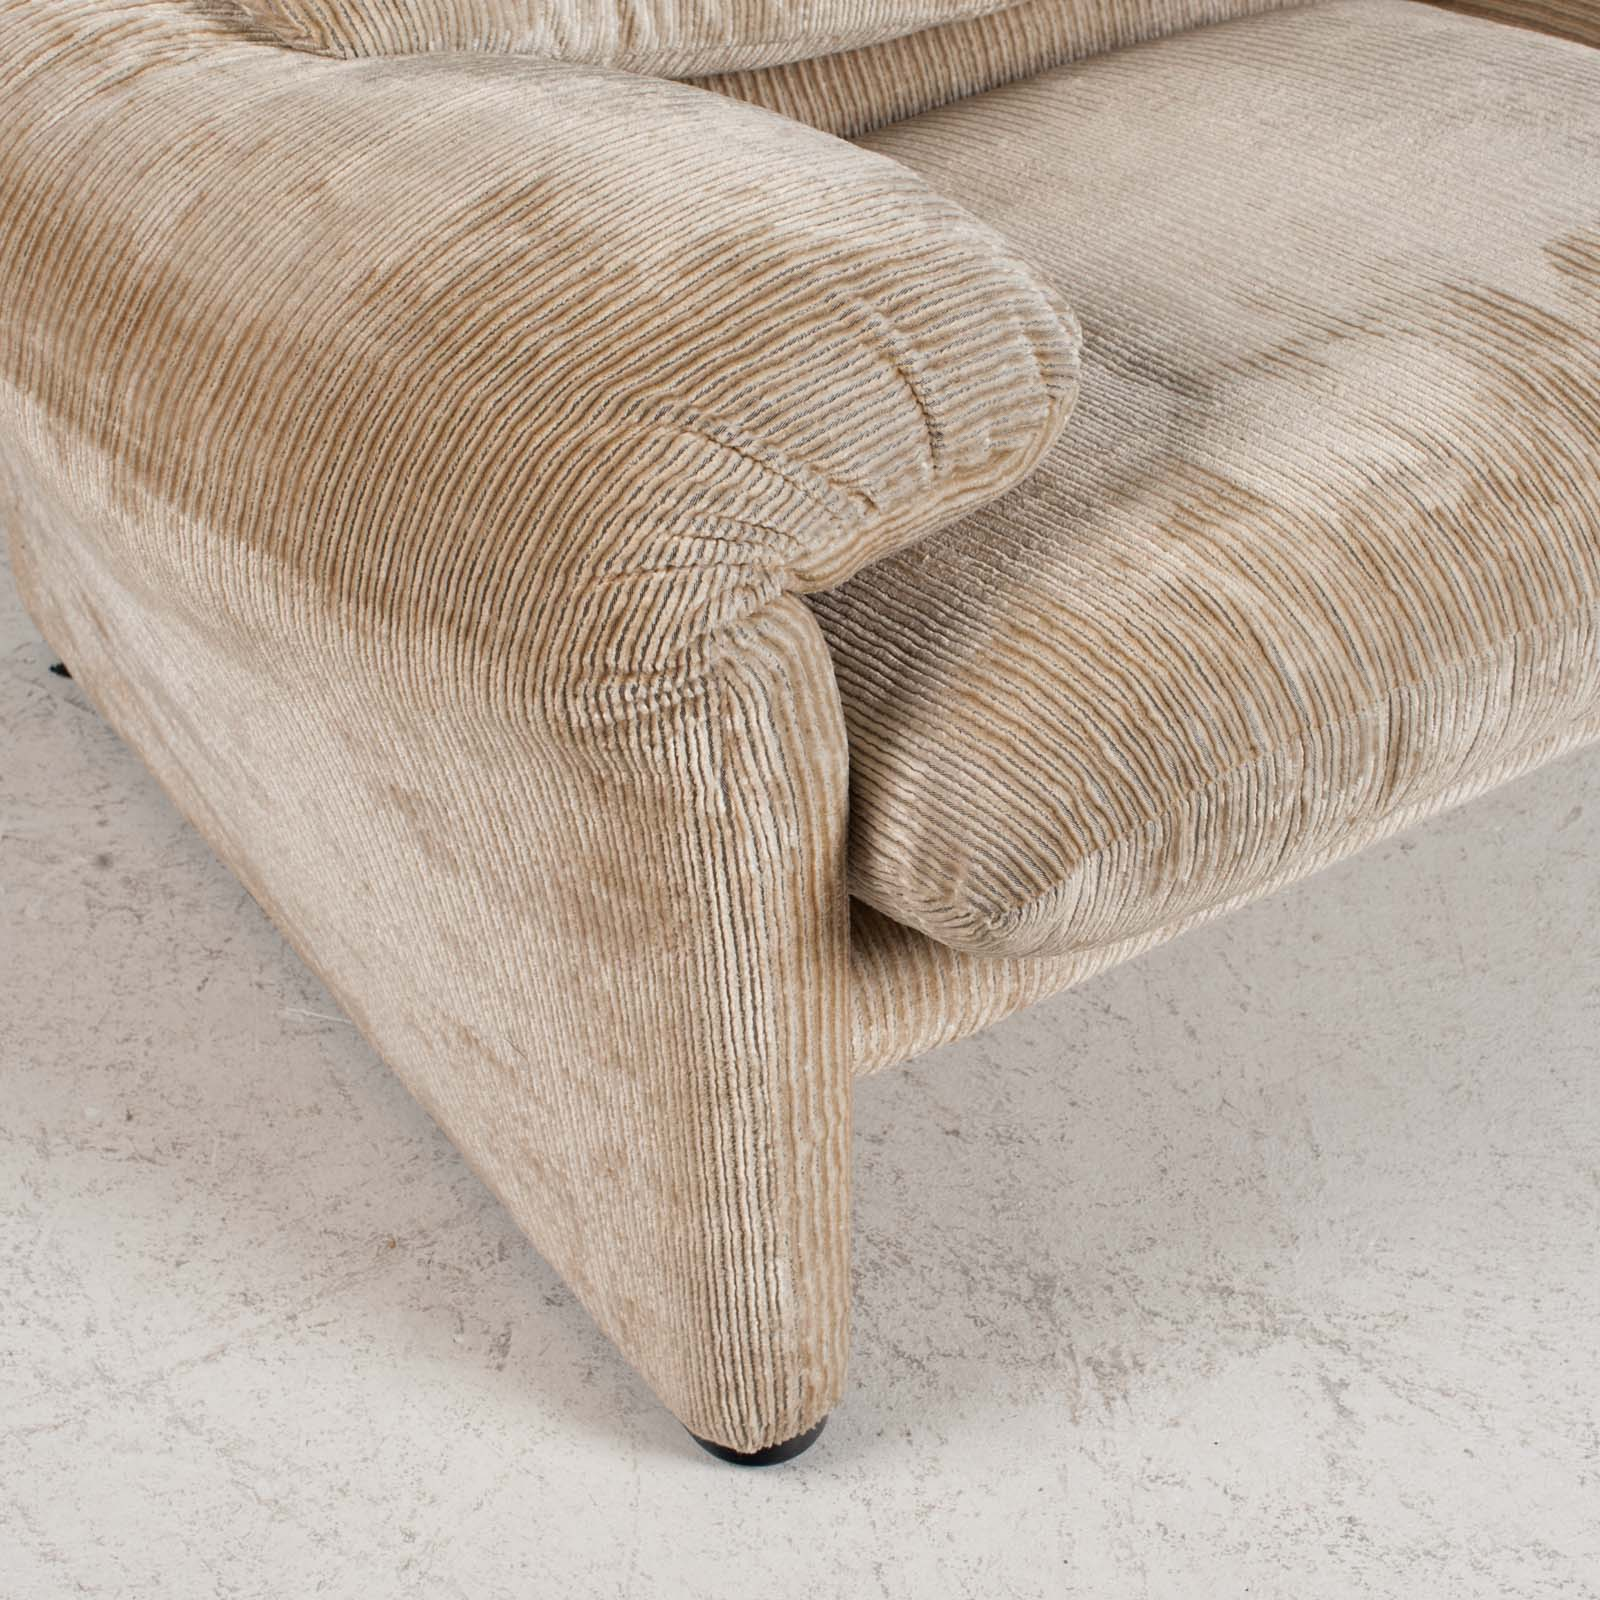 Maralunga 3 Seat Sofa By Vico Magistretti For Cassina In Original Upholstery 1970s Italy 011